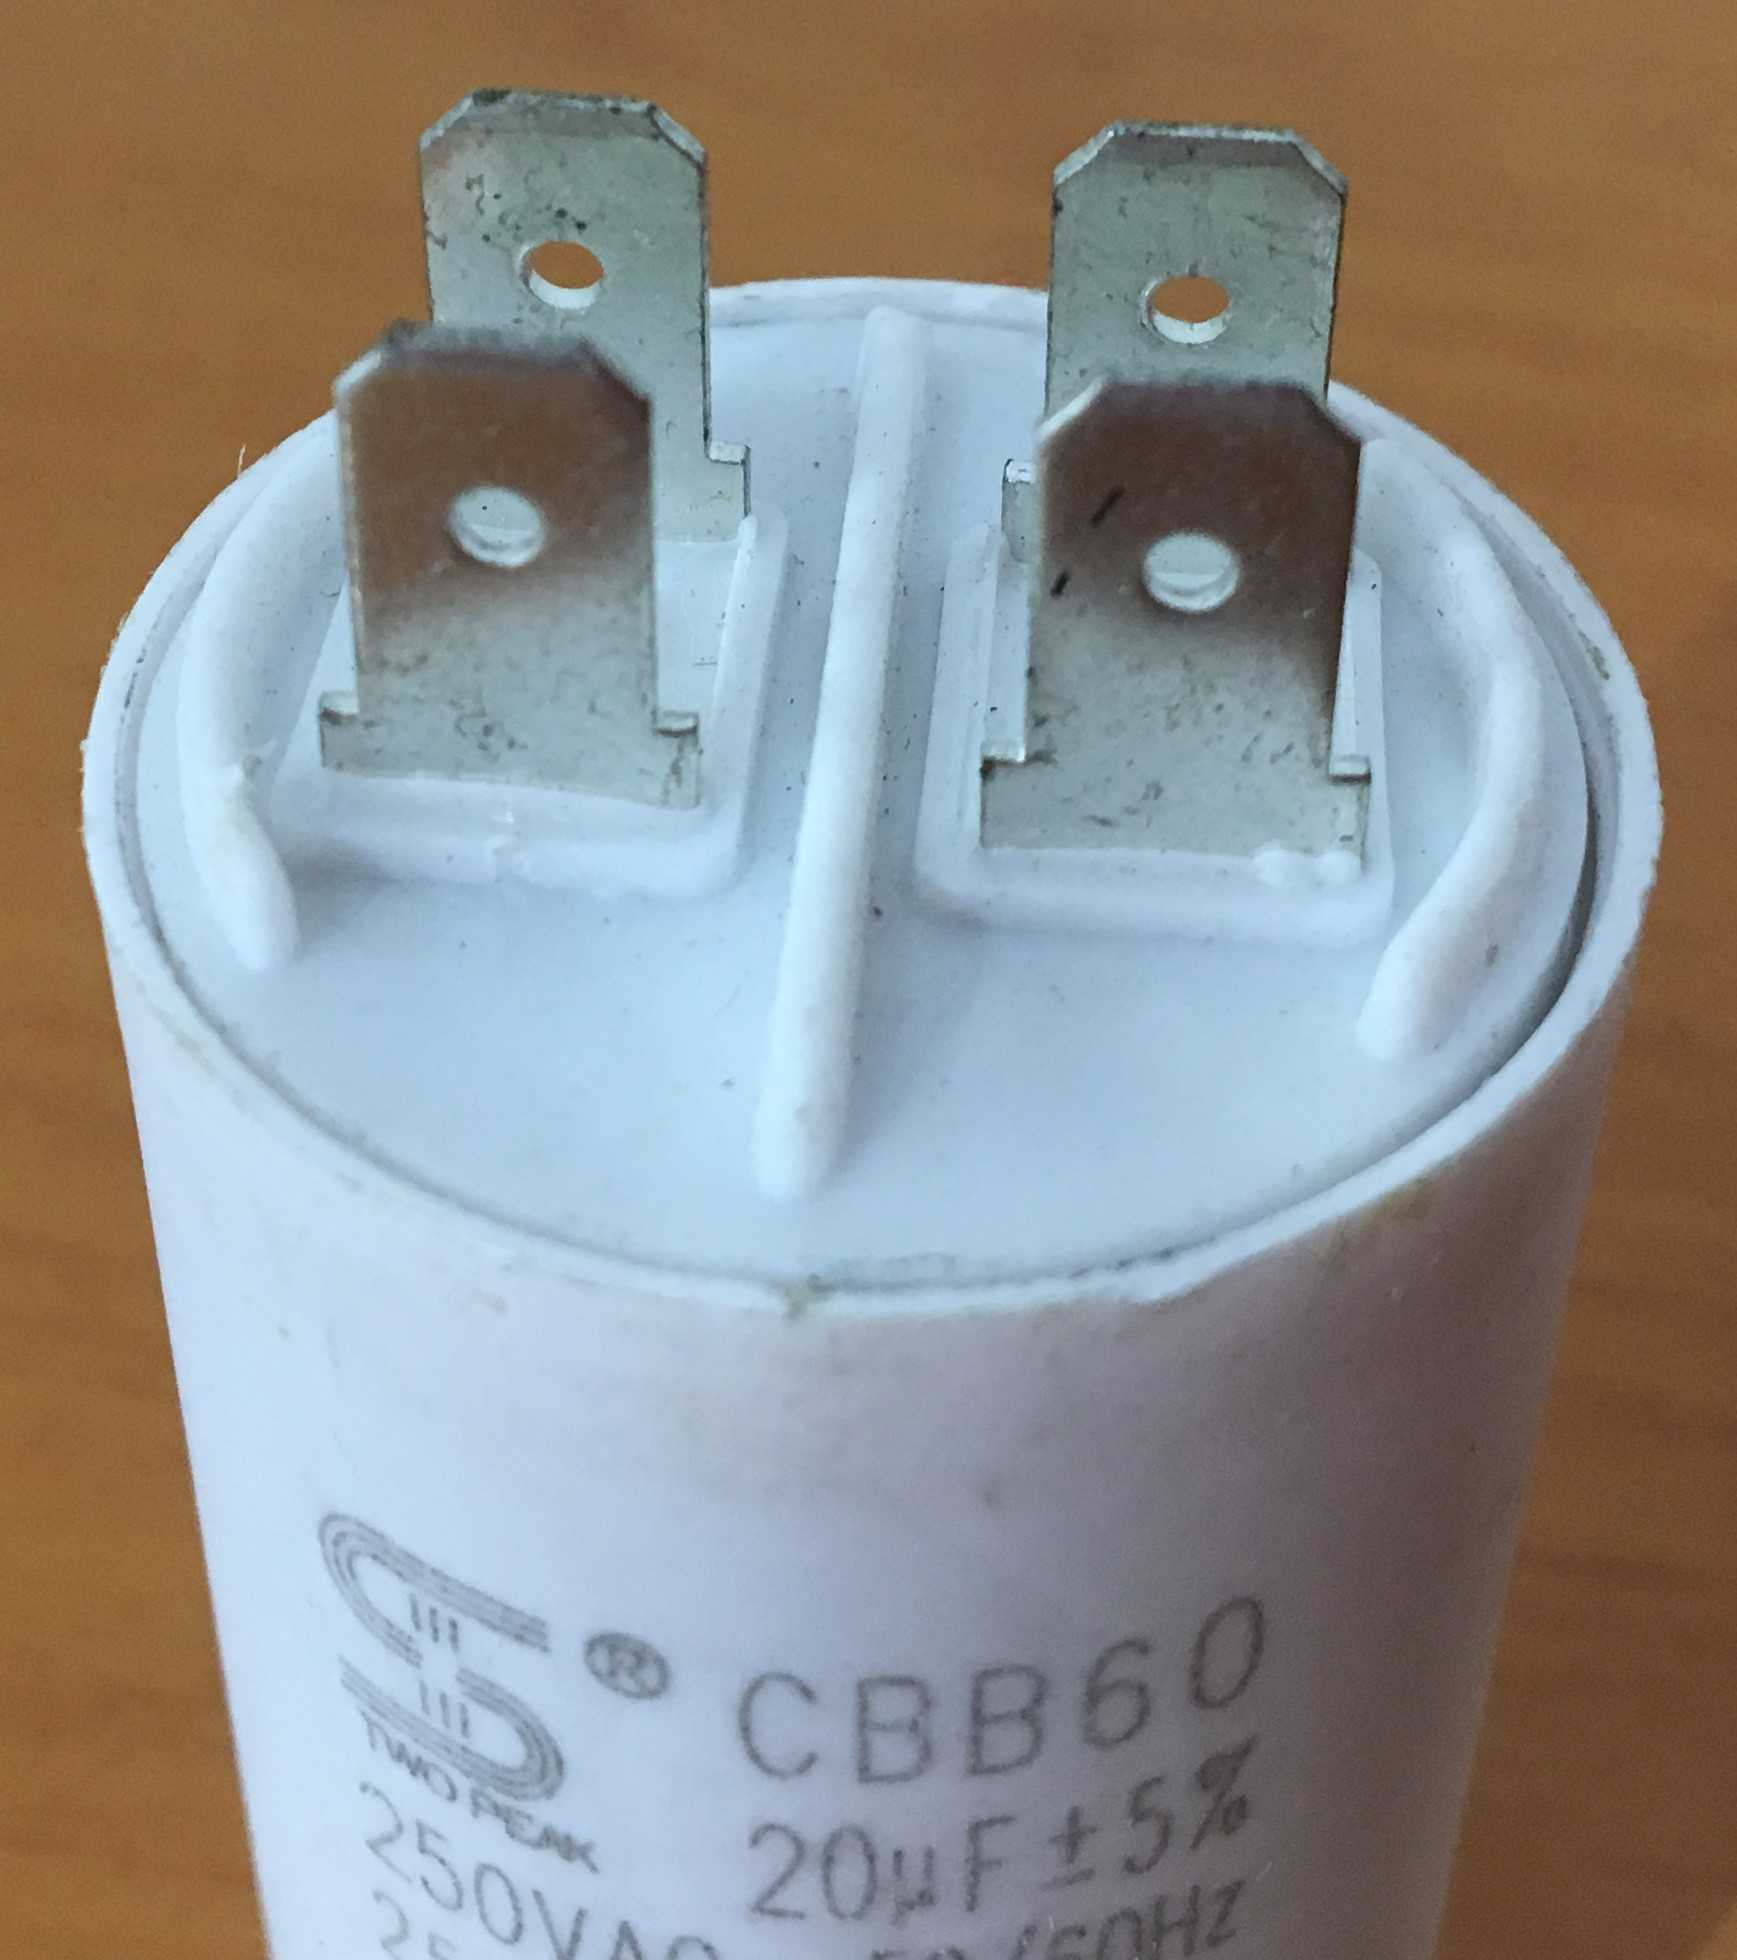 Capacitor 20UF 250VAC Marca TWO PEAK